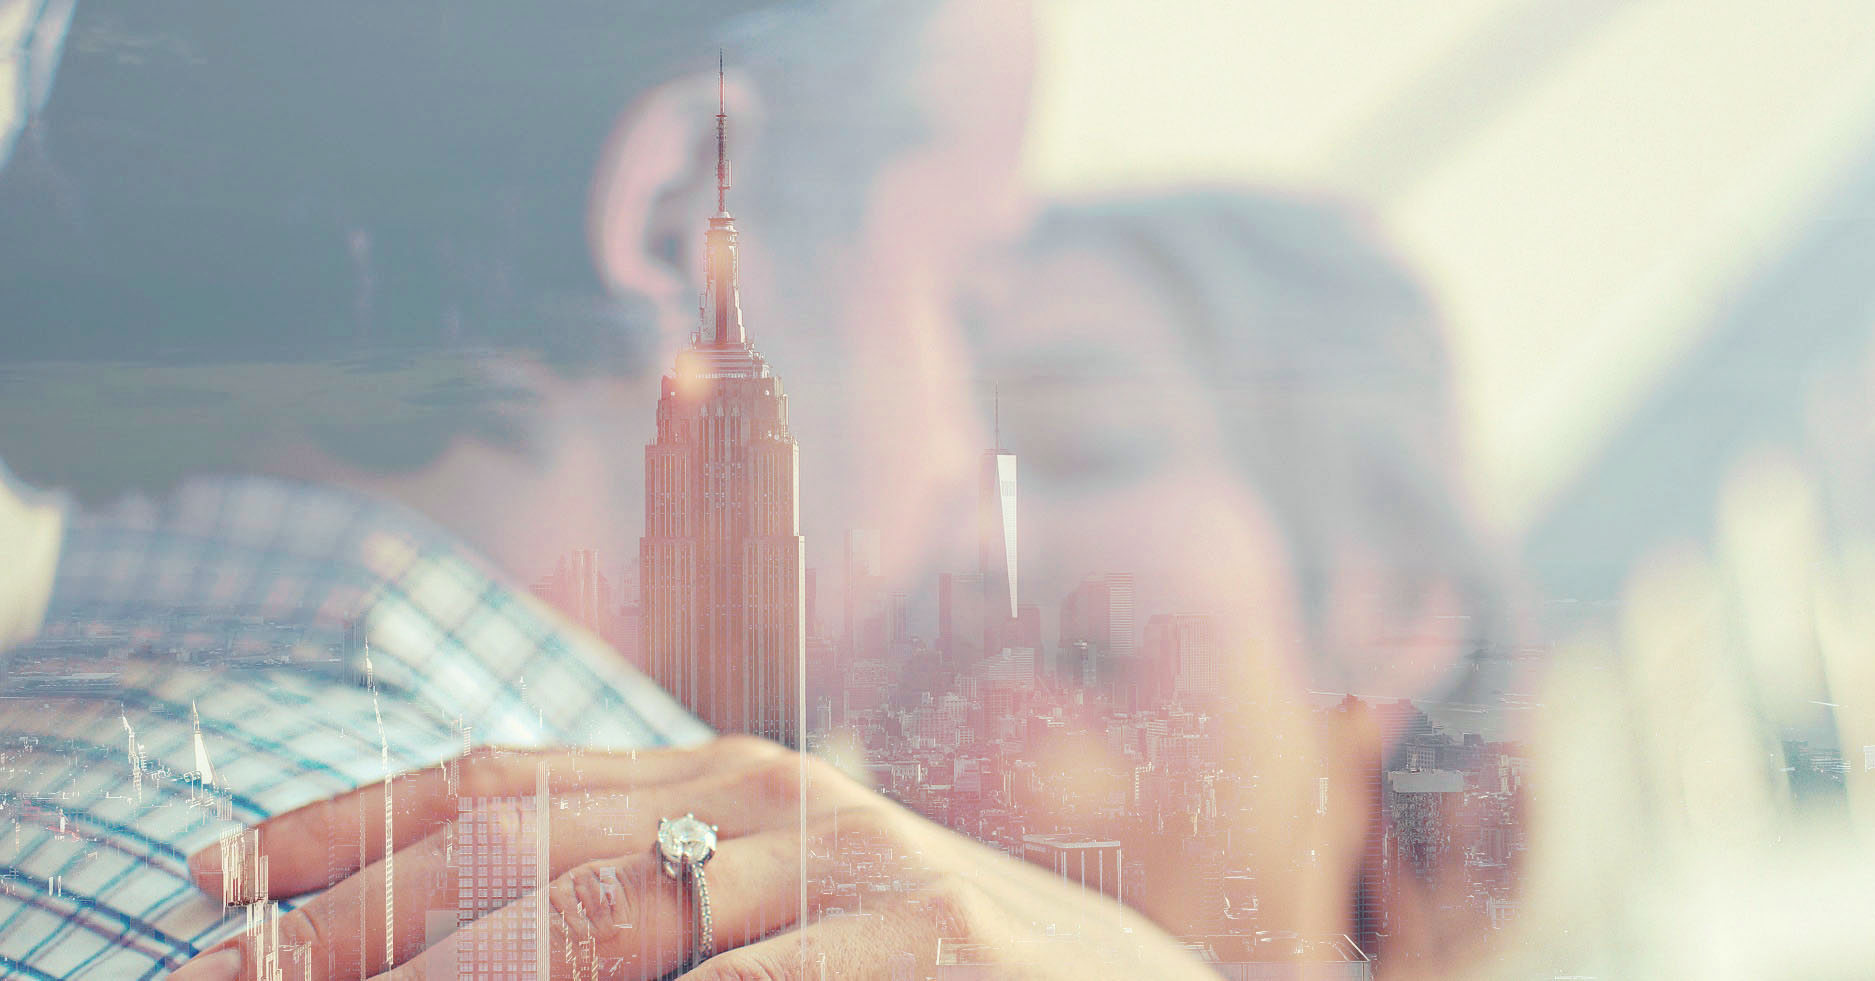 Proposal Flight NYC package